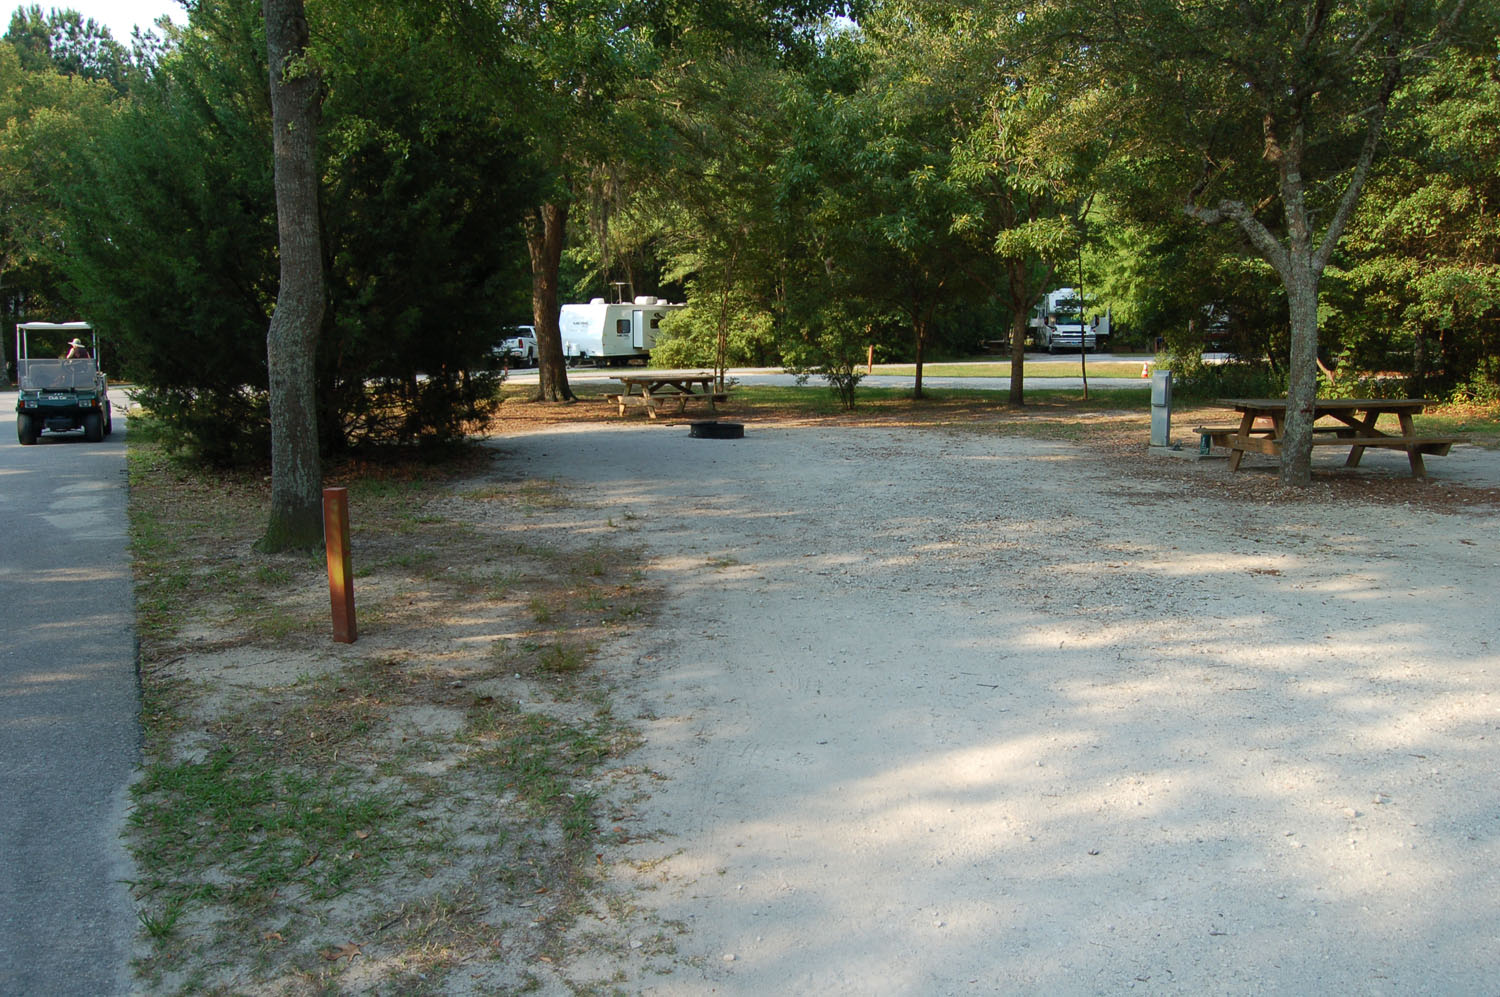 Image of campsite #71 at the Campground at James Island County Park